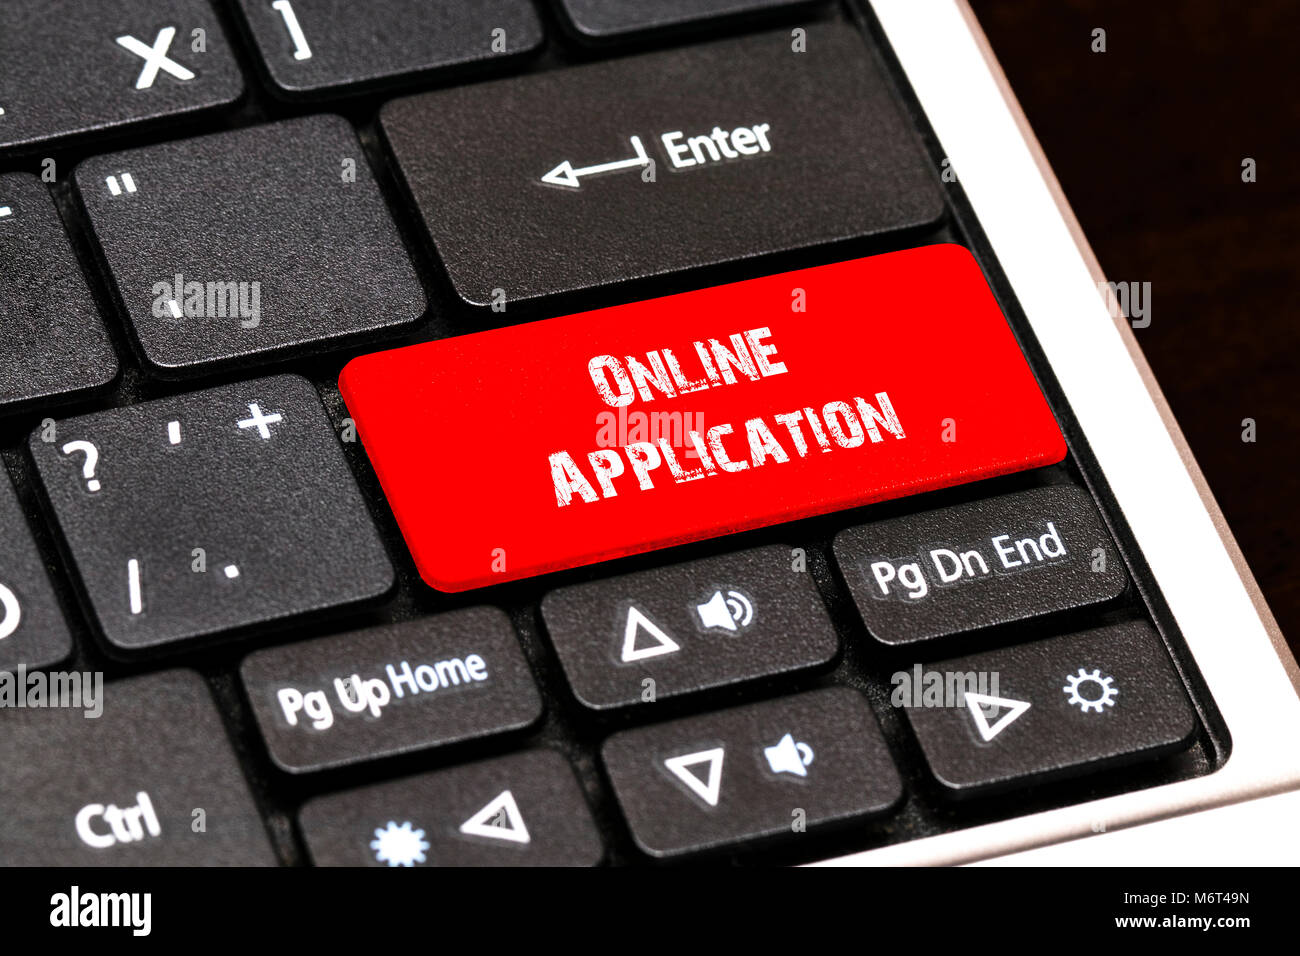 On the laptop keyboard the red button written Online Application. - Stock Image